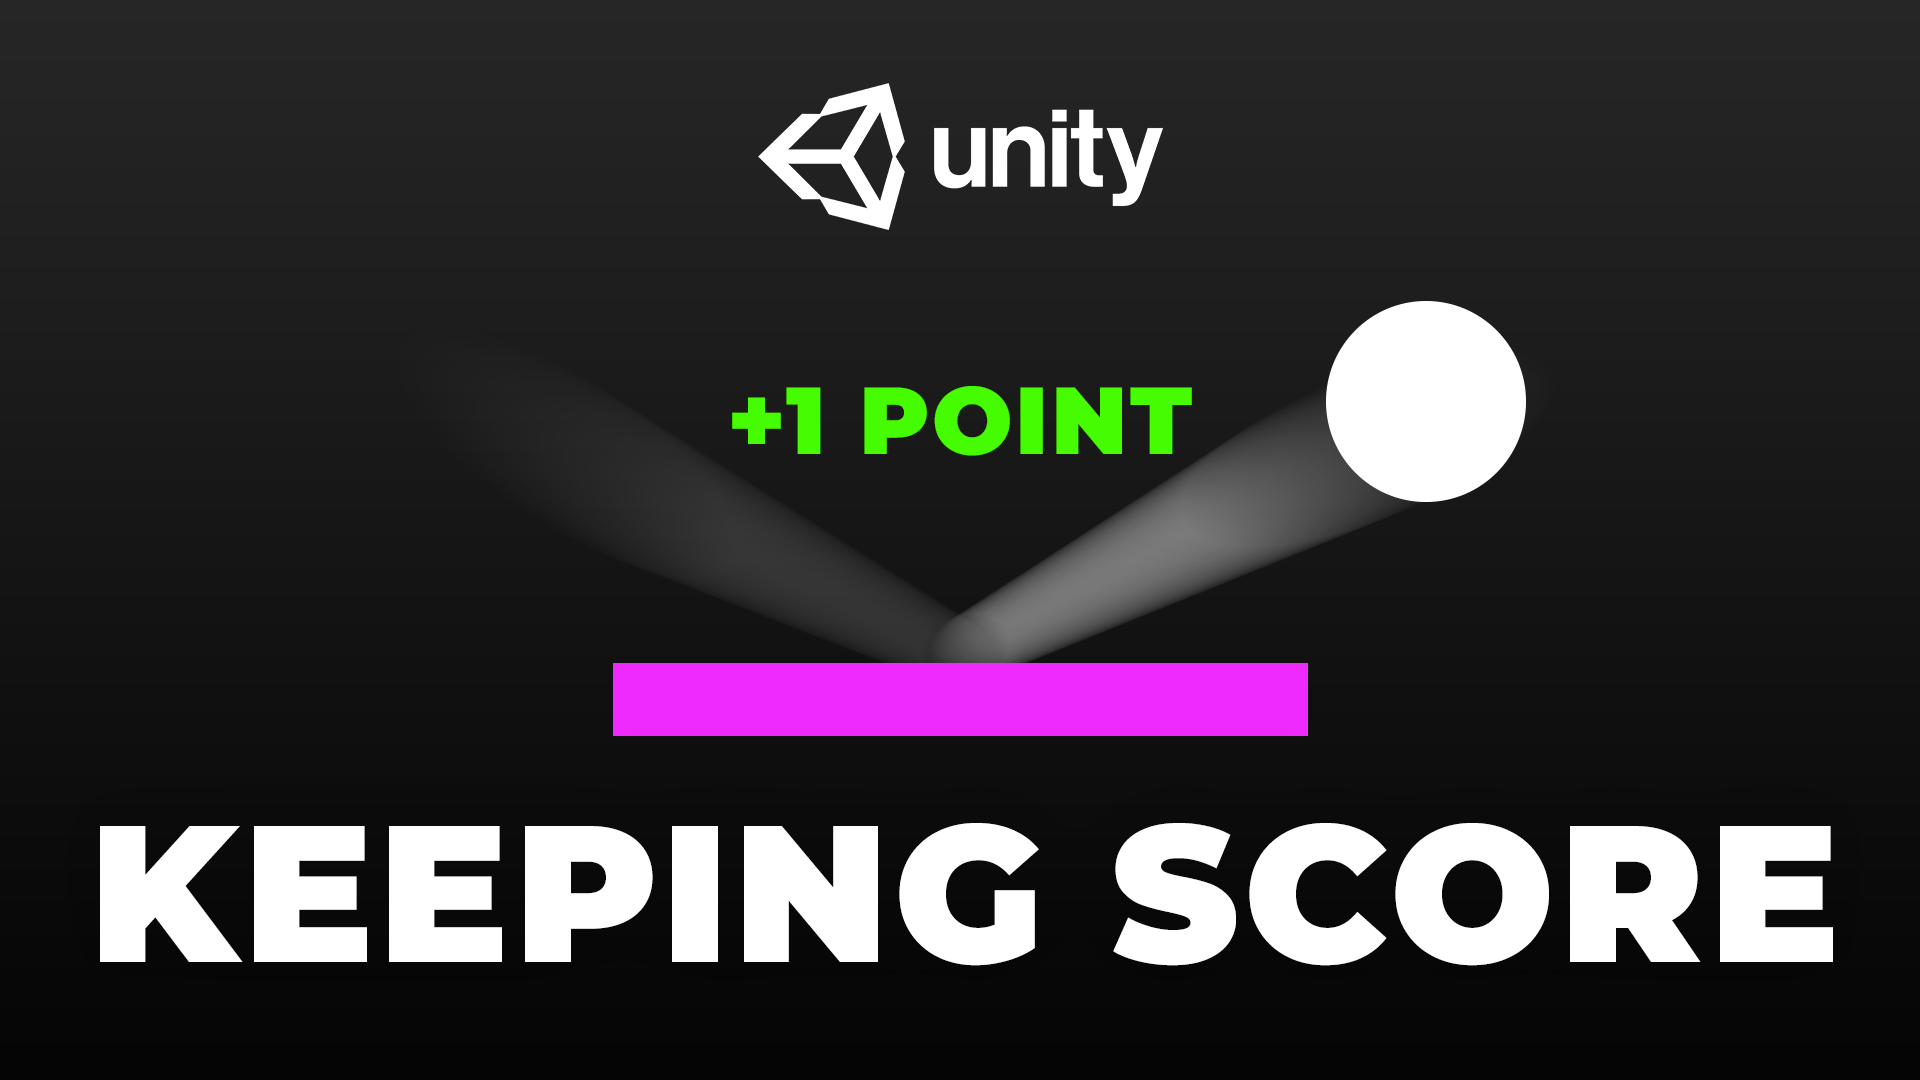 How to Keep Score in Unity - A Basic Game Tutorial